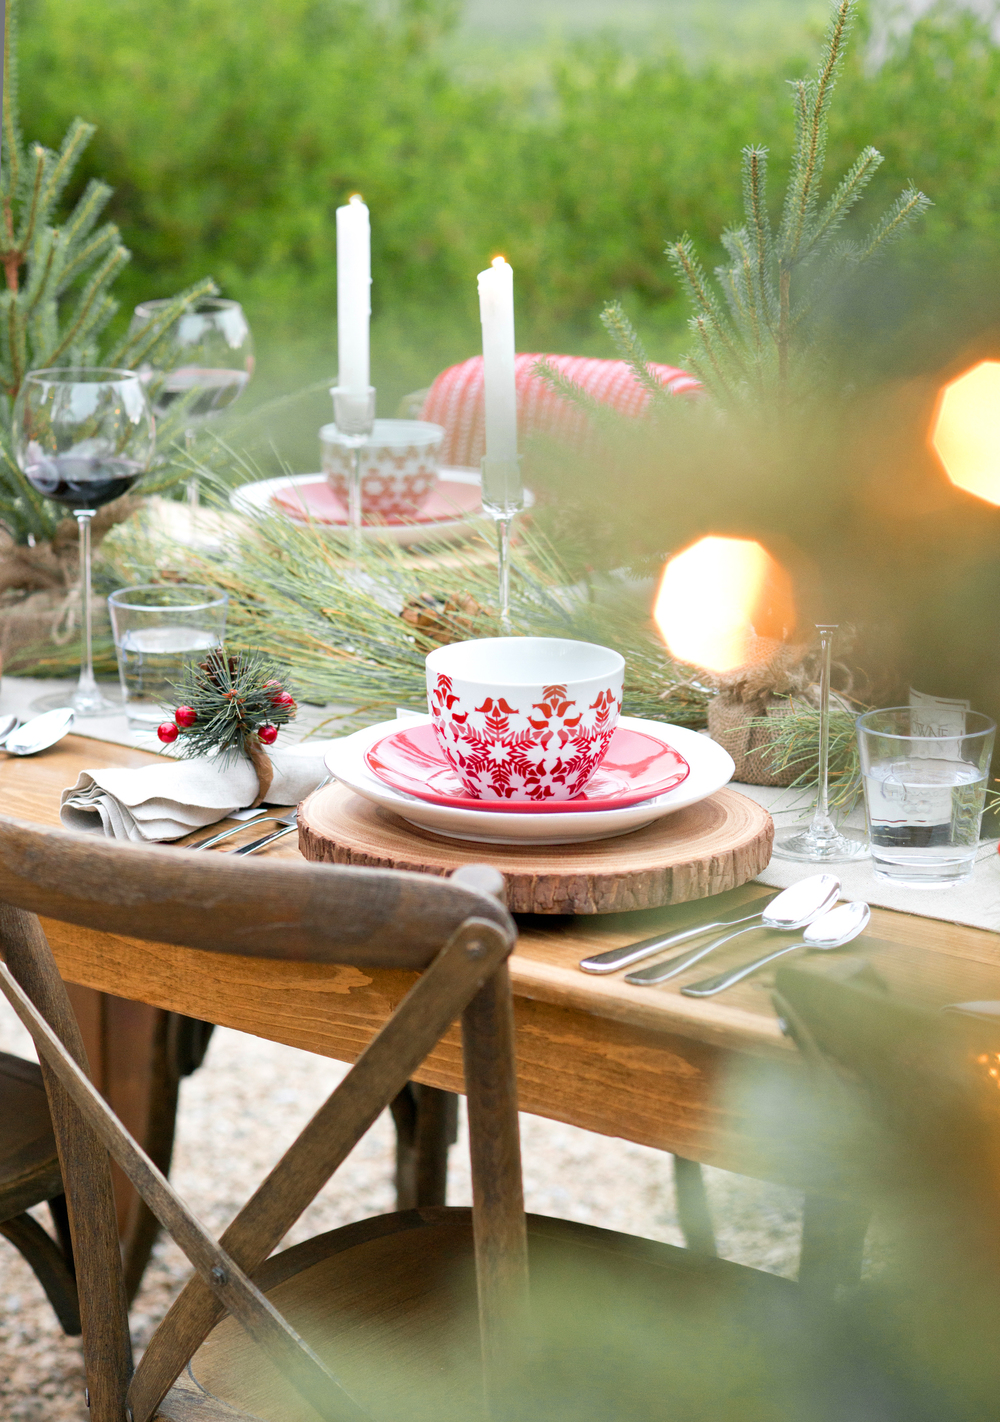 Crate & Barrel Christmas Tablescape - My Splendid Living Christmas Special Blog post - Christmas Amongst the Fir